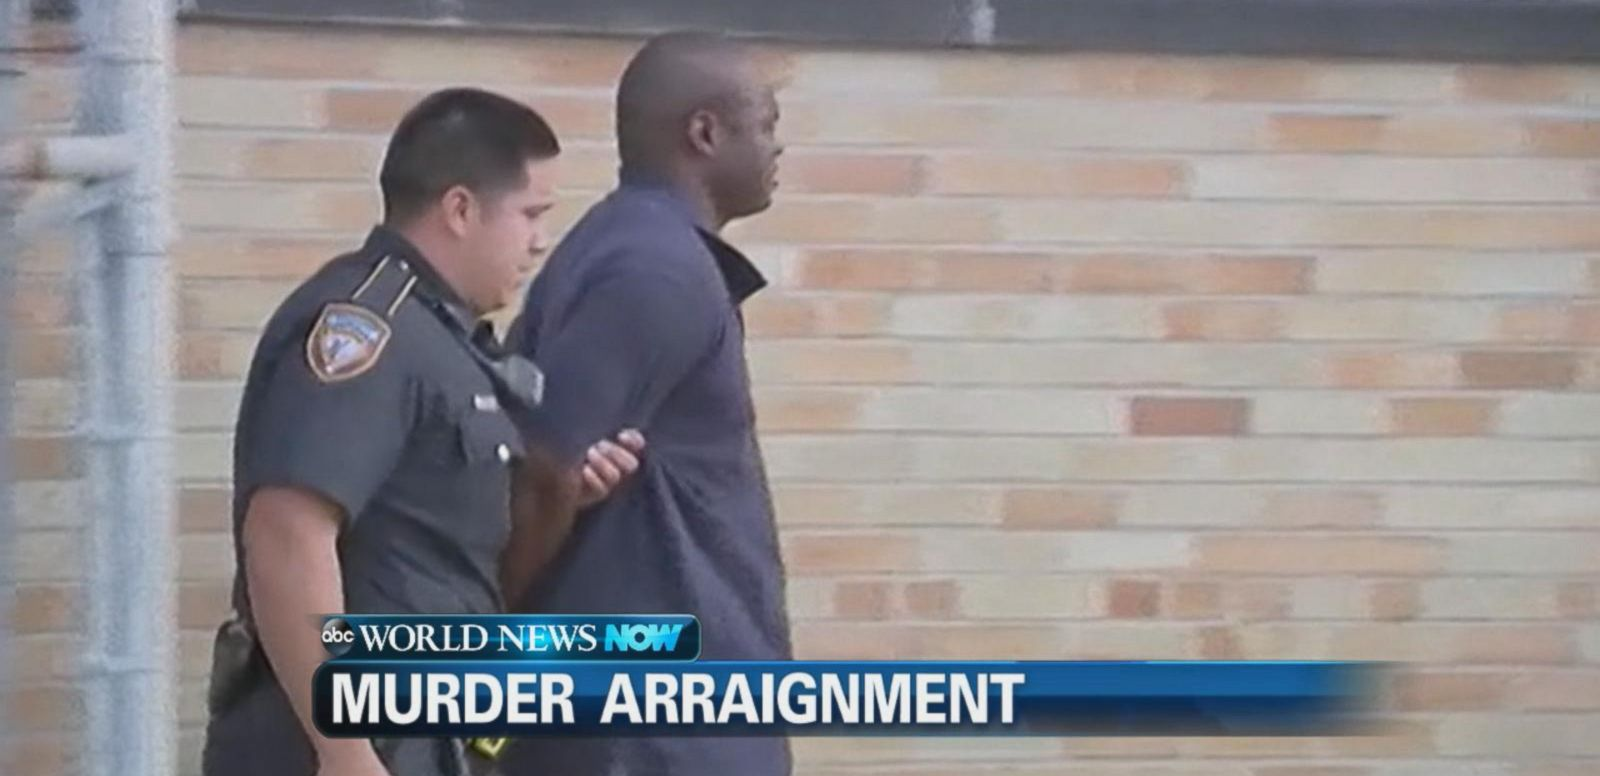 VIDEO: Shannon Miles could face the death penalty for the shooting death of Deputy Darren Goforth.